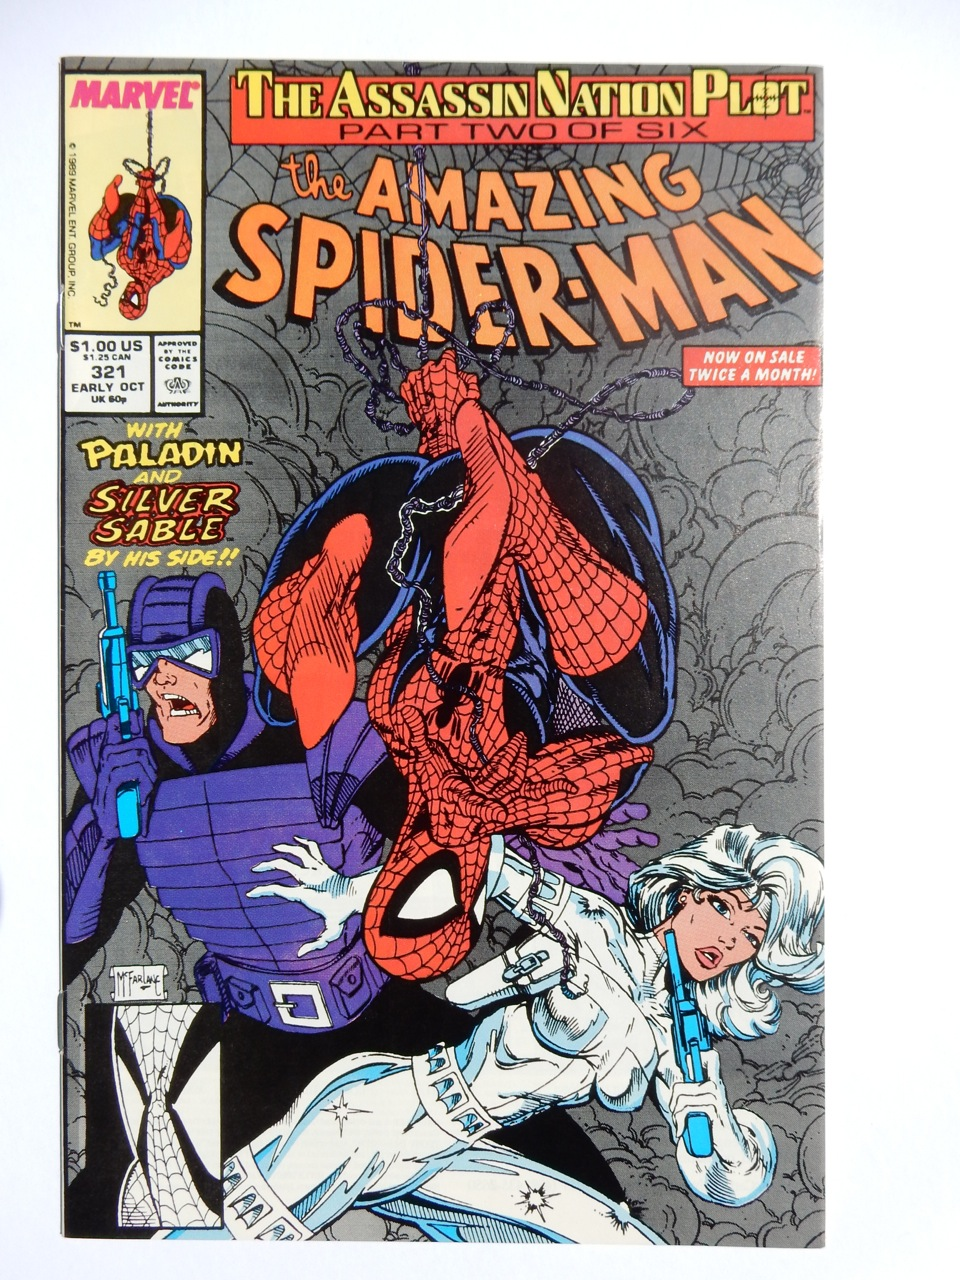 Amazing Spider-Man #321